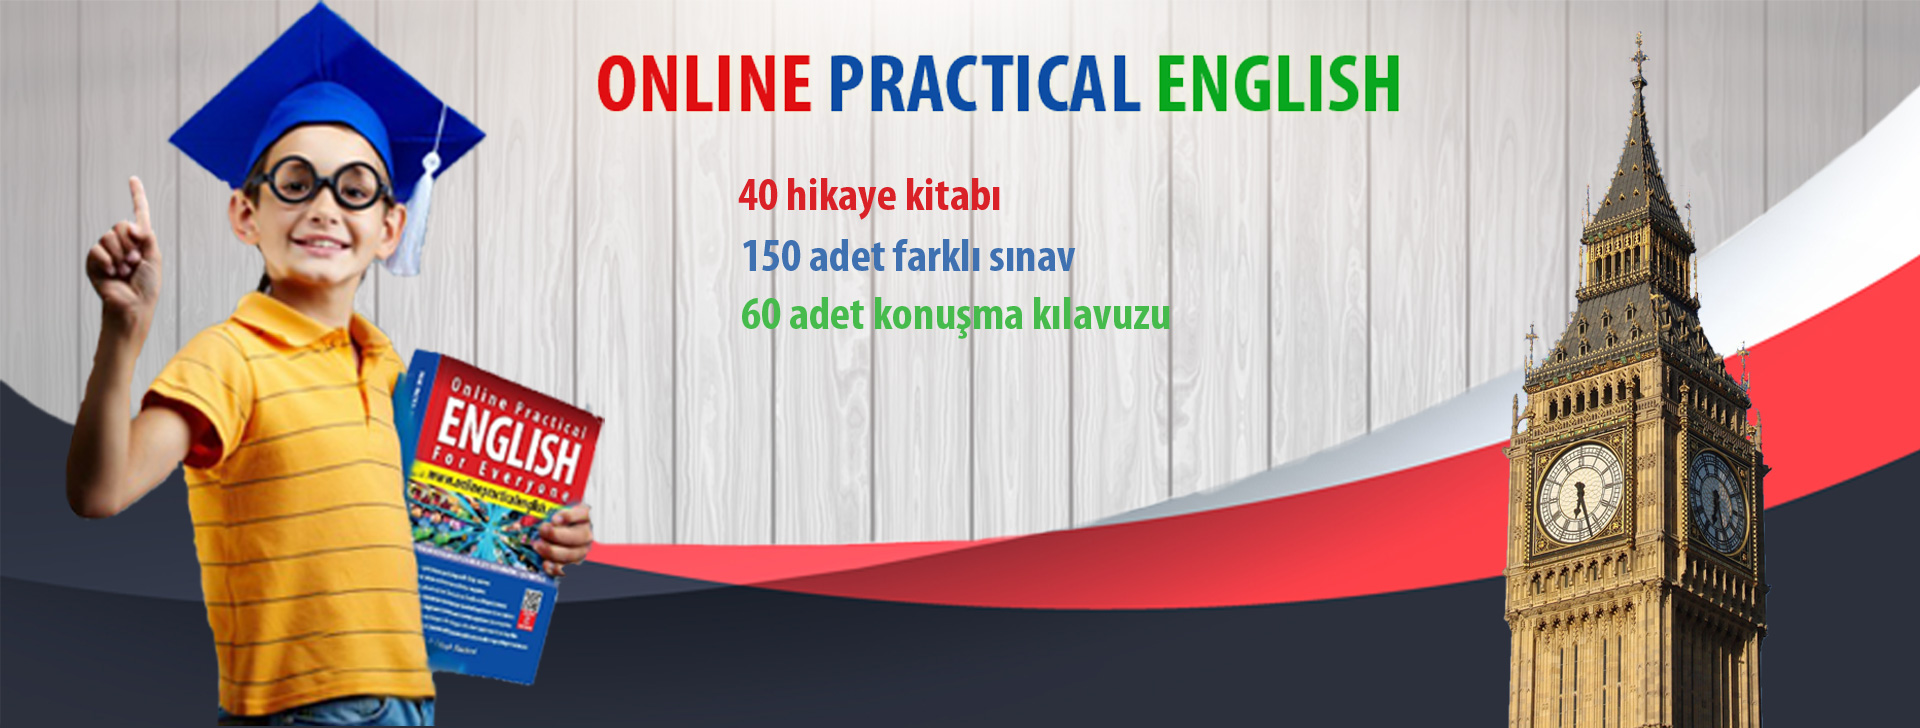 ONLINE PRACTICAL ENGLISH – OPE